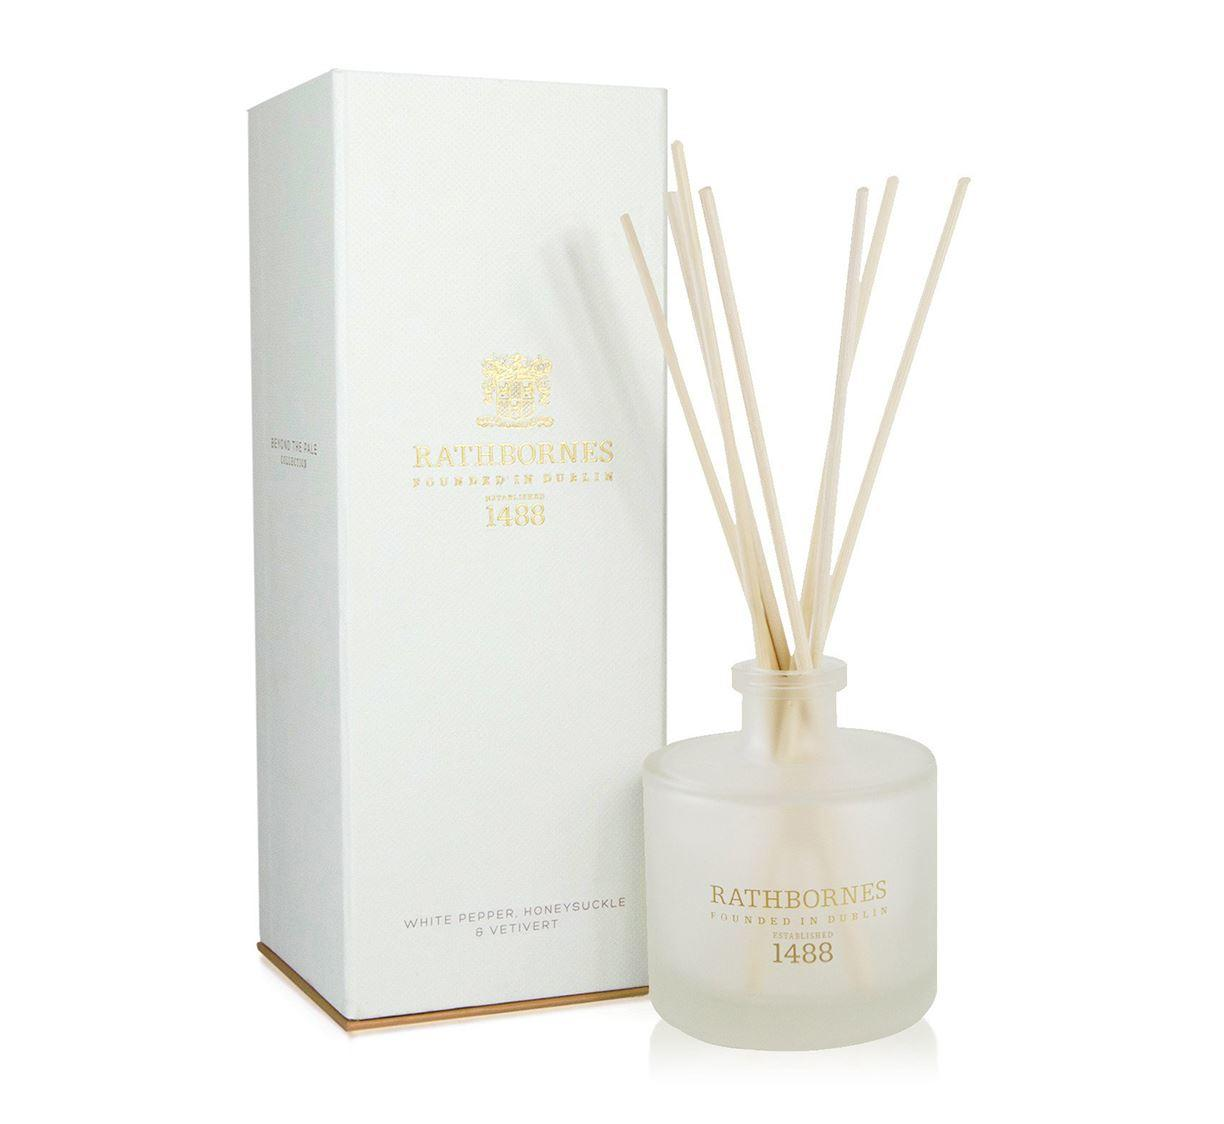 Rathbornes 1488 White Pepper, Honeysuckle & Vertivert Reed Diffuser